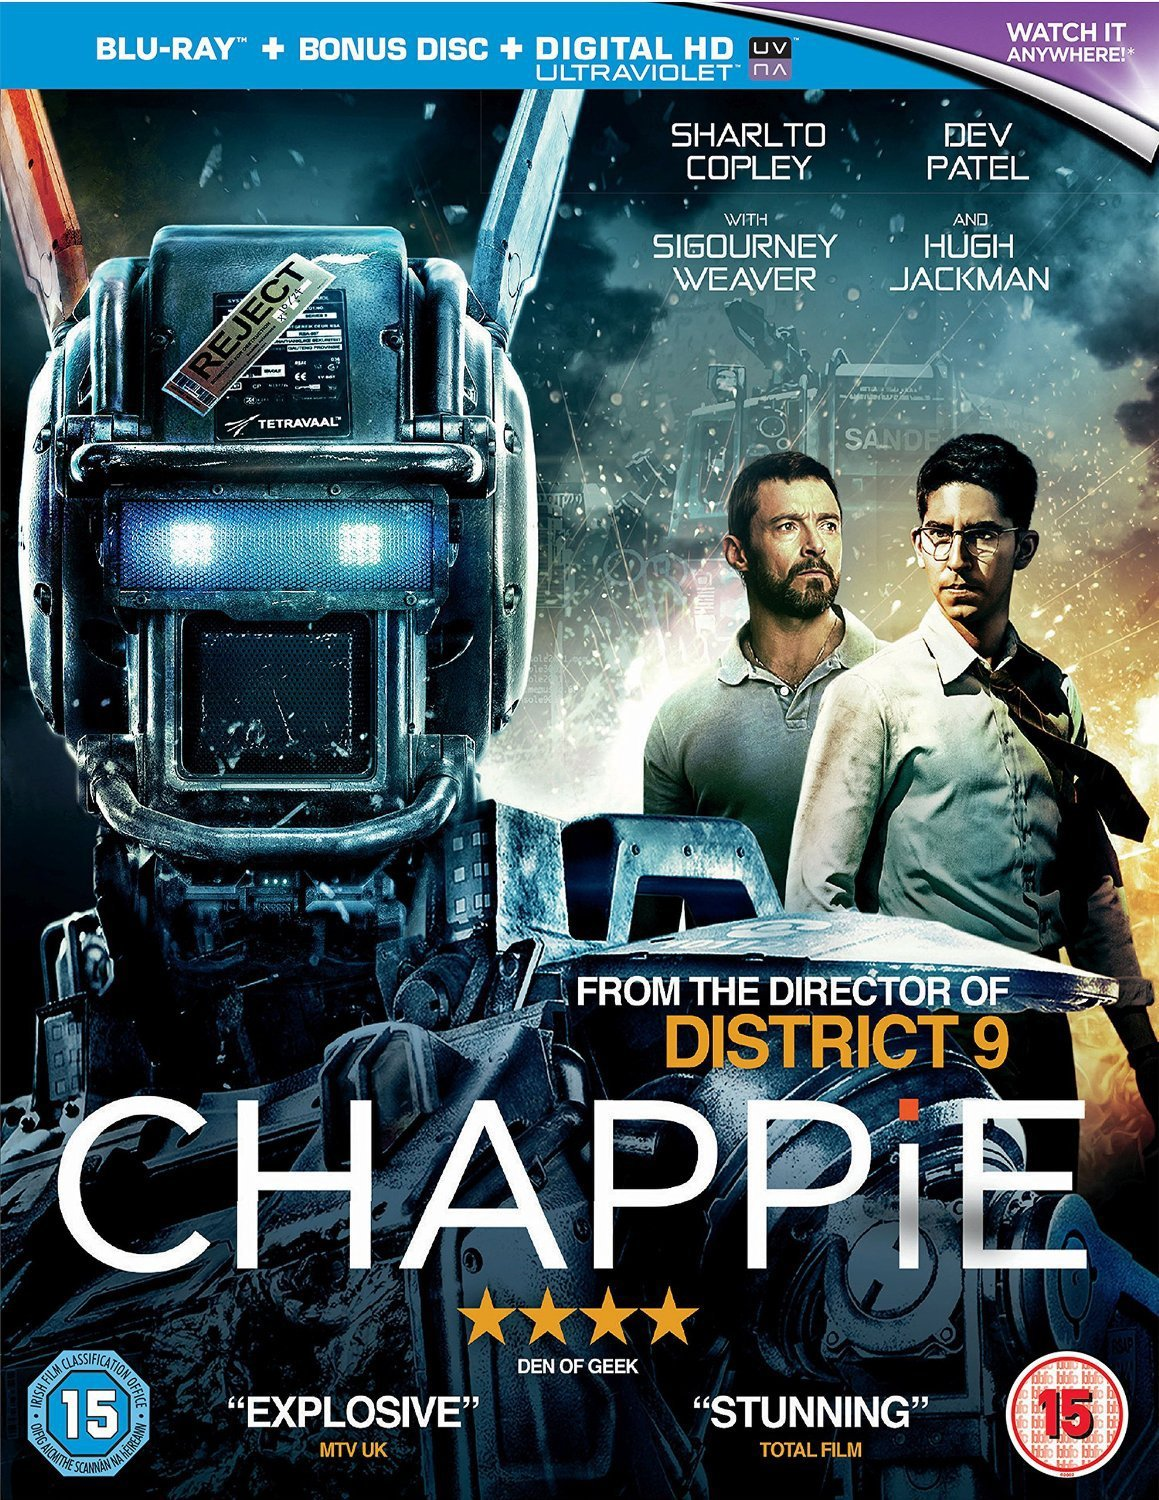 CHAPPiE  The Fleapit Cinema and Video Shop